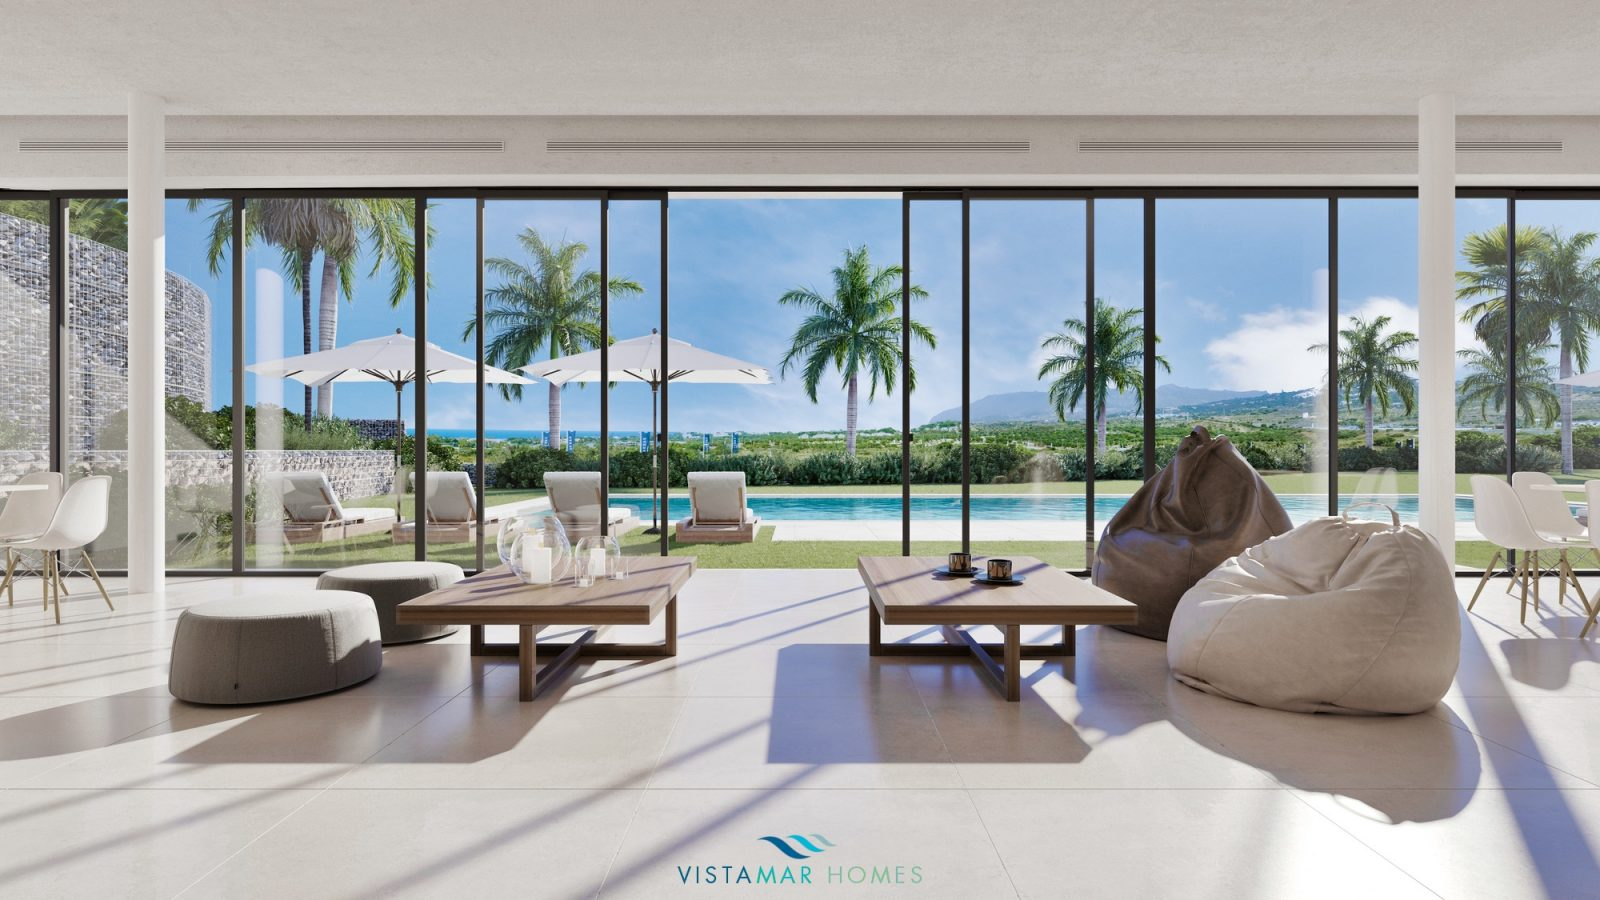 Santa Clara Marbella, contemporary exclusive villas, penthouses and apartments